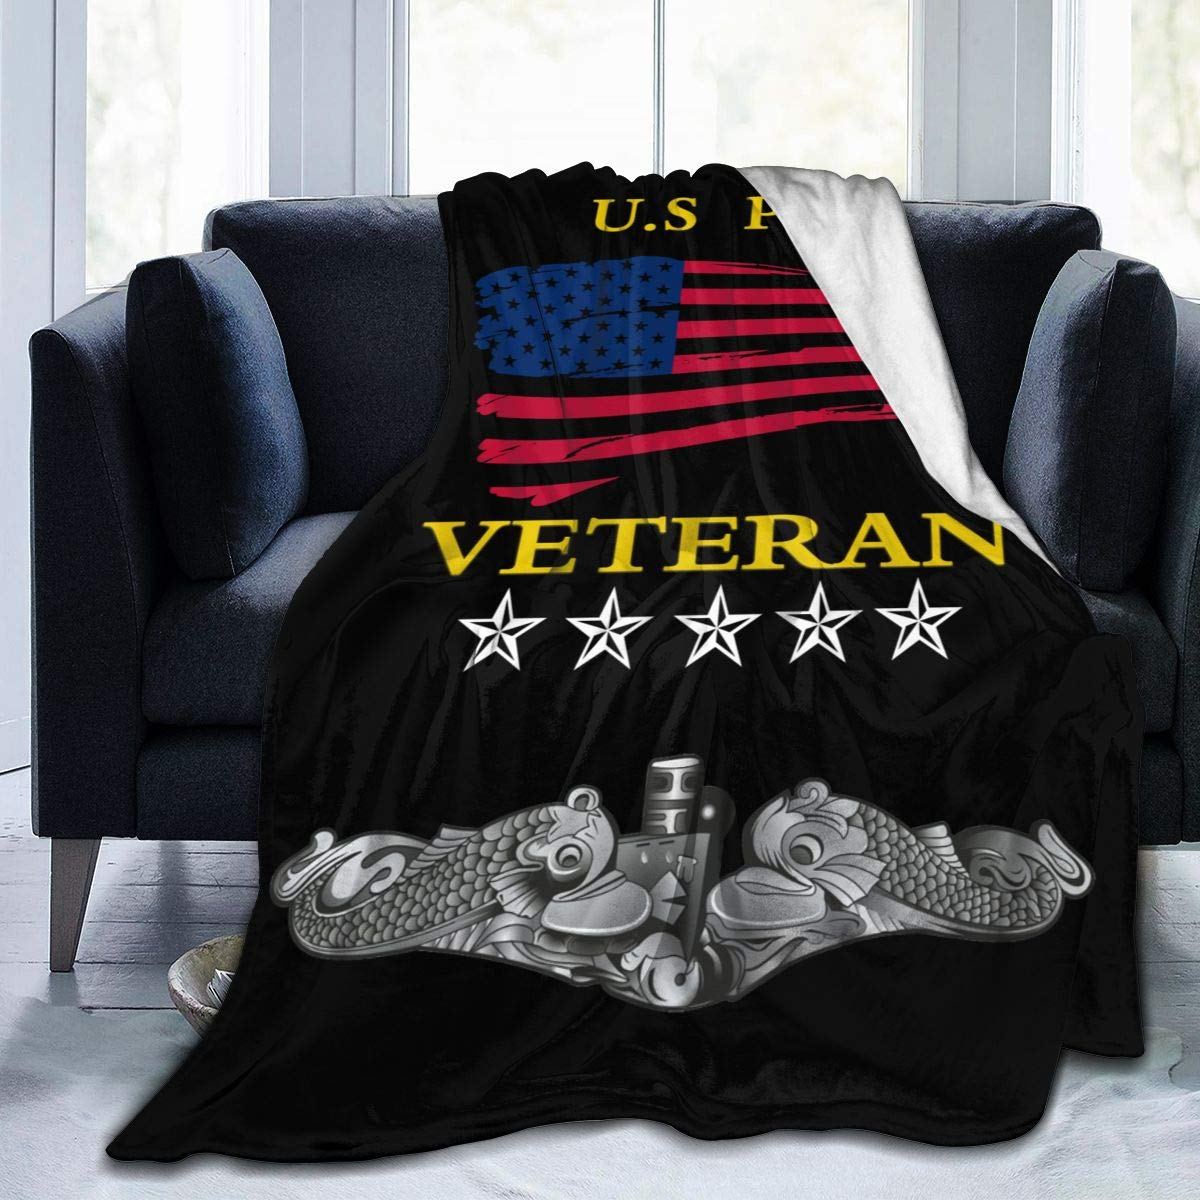 "Rhk-MKN US Navy Submarine Insignia Soft and Warm Throw Blanket Plush Bed Couch Living Room Fleece Blanket 50""x40""60""x50""80""x60"""